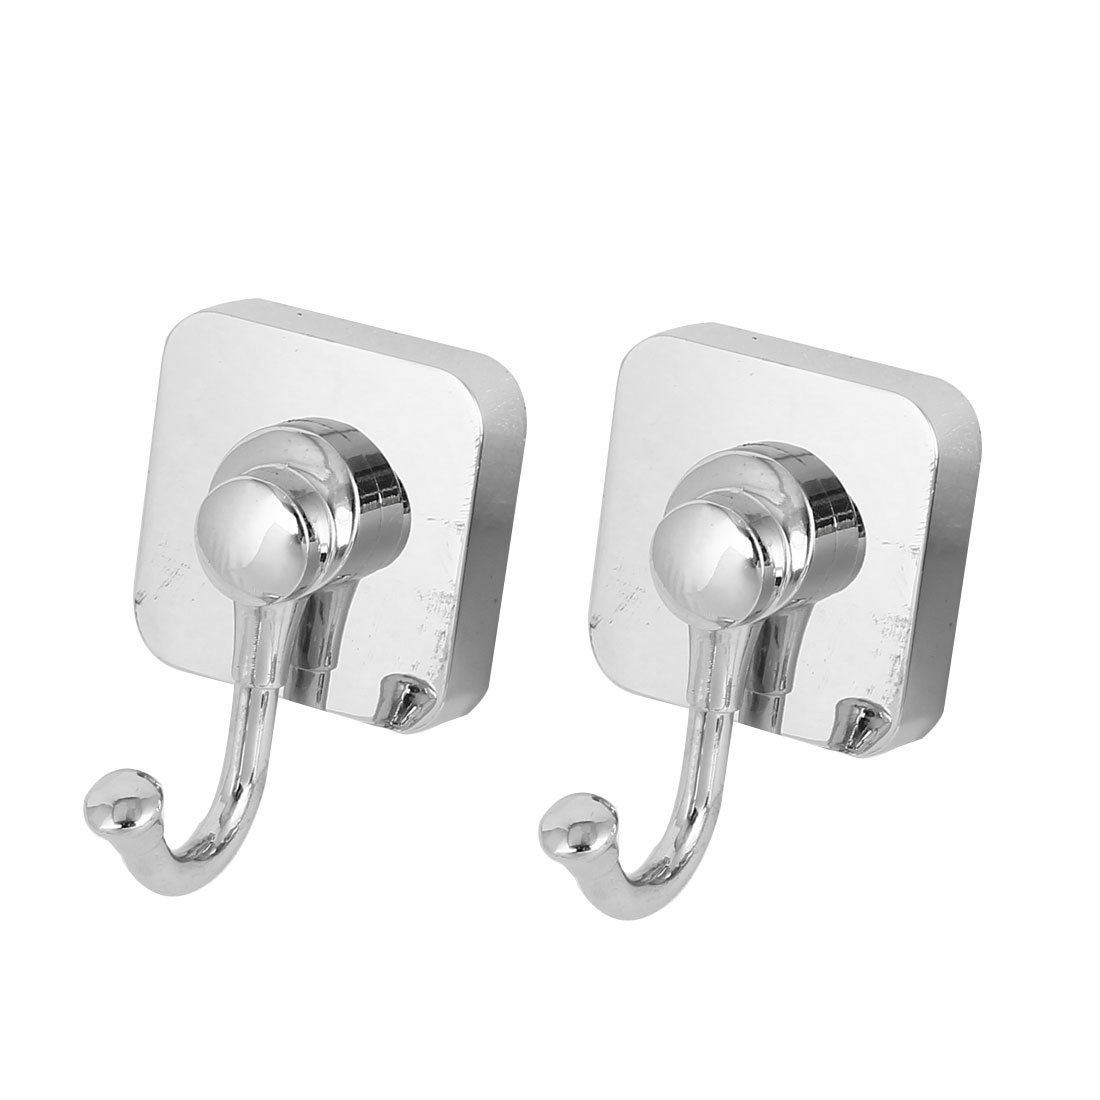 75mm x 50mm Square Bottom Wall Mounted Clothes Hat Single Hook Hanger 2pcs